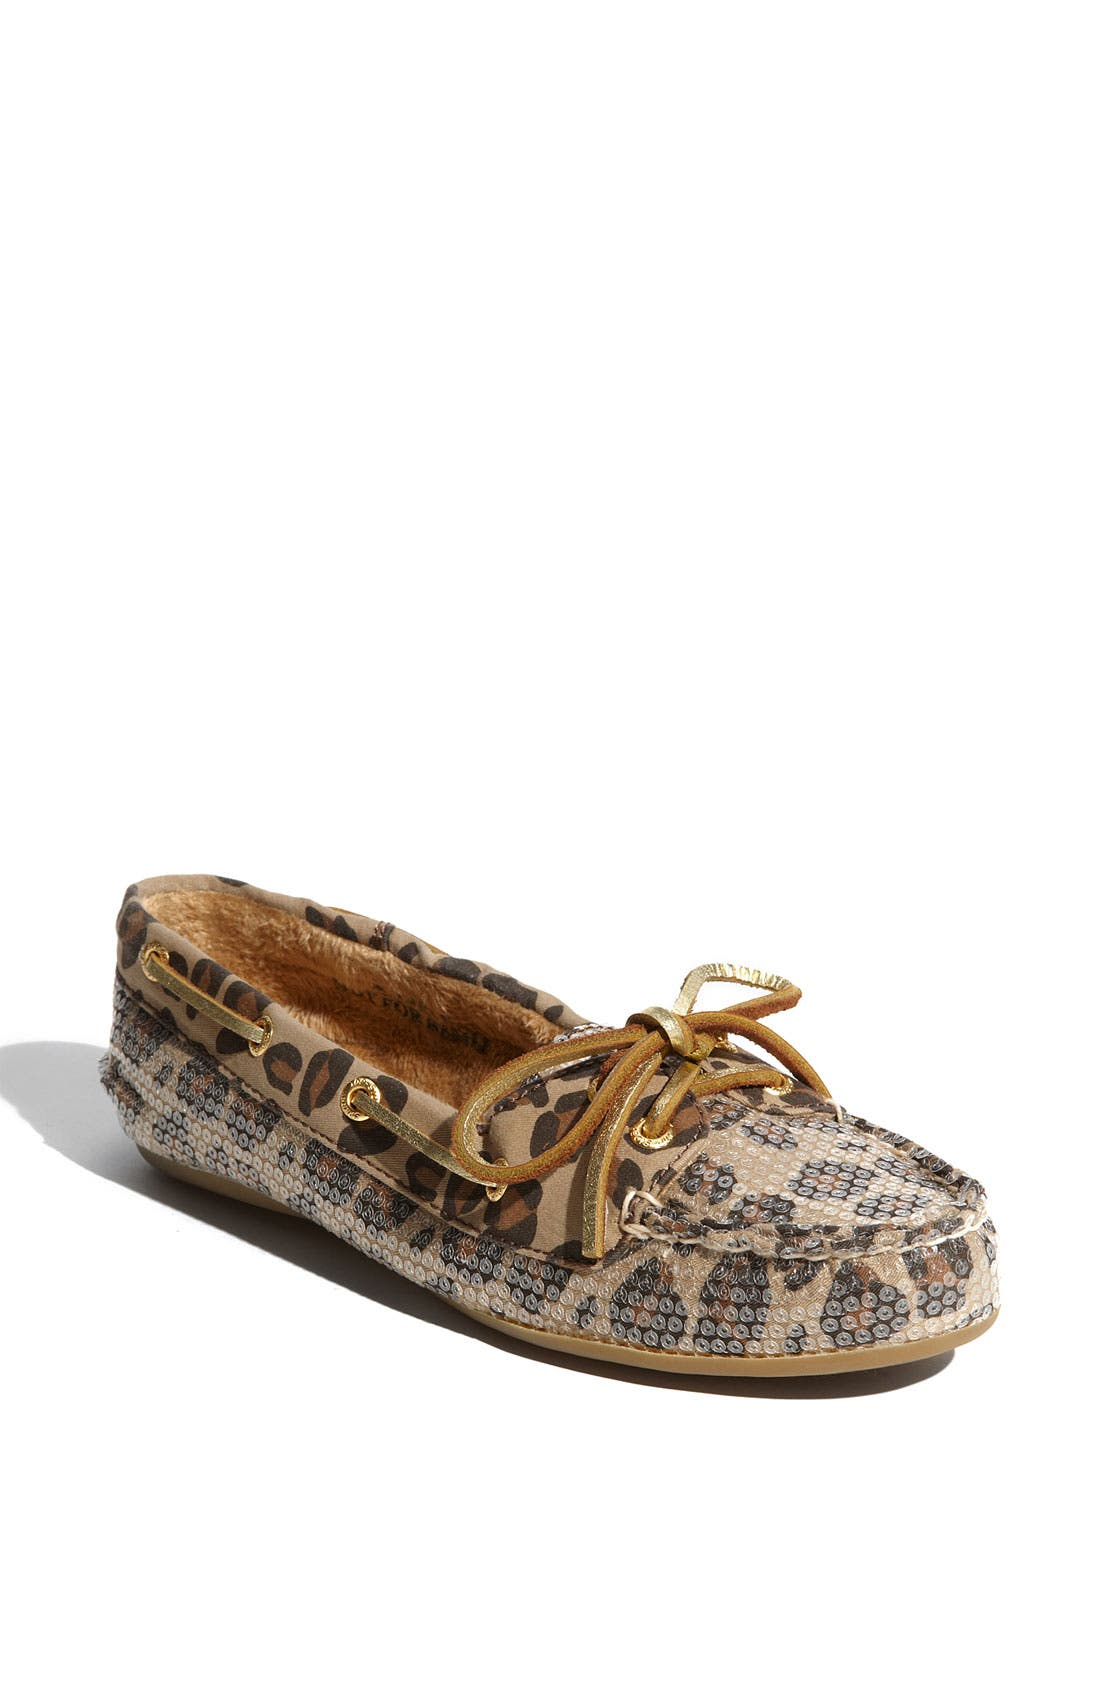 Top-Sider<sup>®</sup> 'Skiff' Moccasin Slip-On,                             Main thumbnail 1, color,                             Leopard Sequins